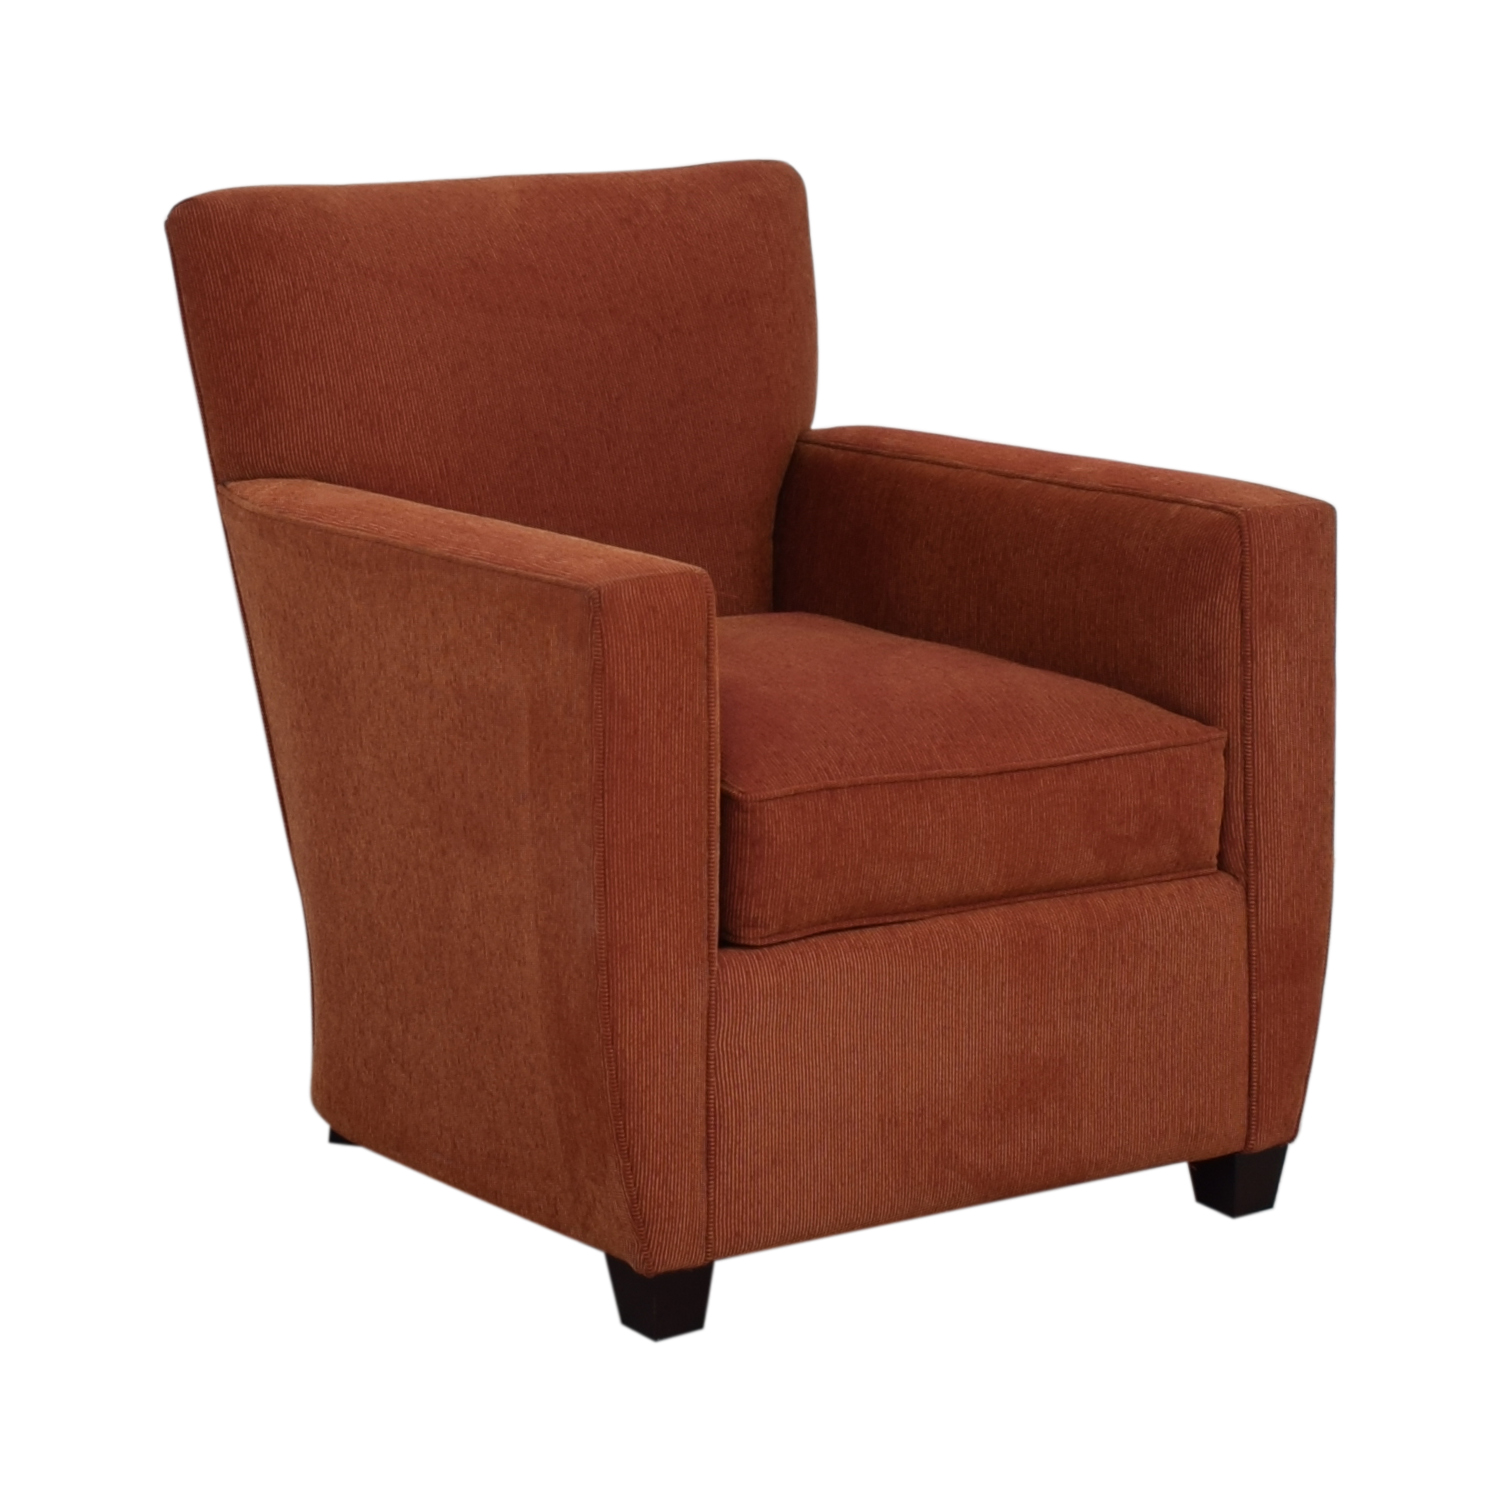 Crate & Barrel Chili Red Accent Chair Crate & Barrel